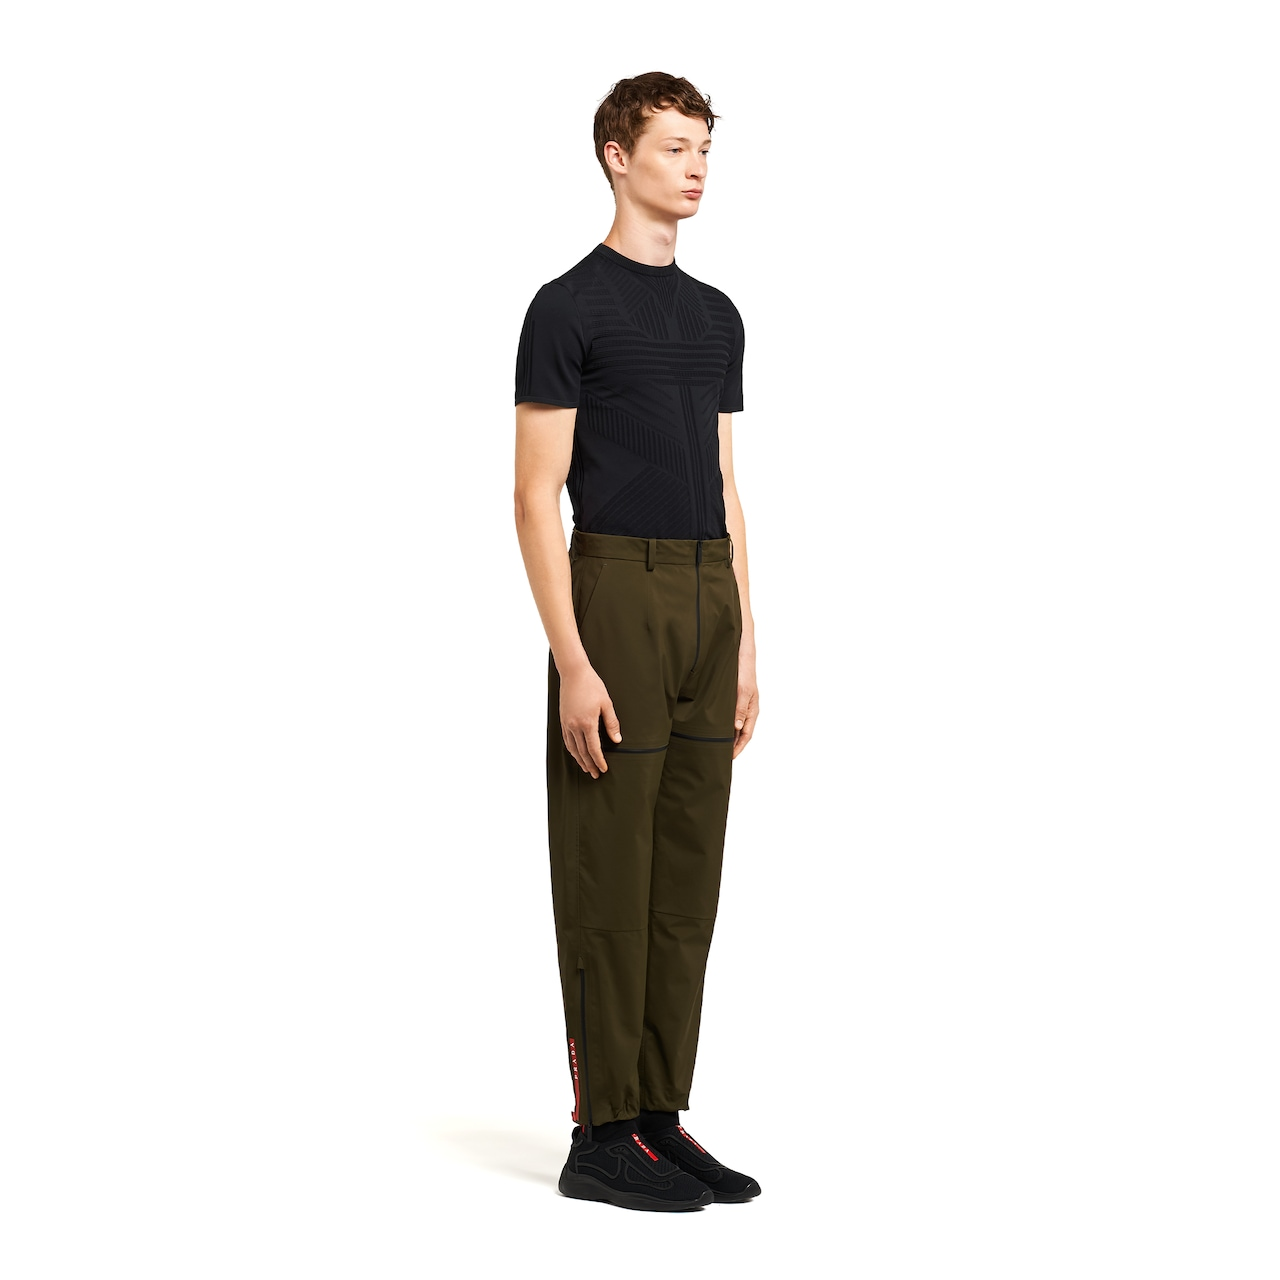 LR-MX014 professional technical fabric trousers 3